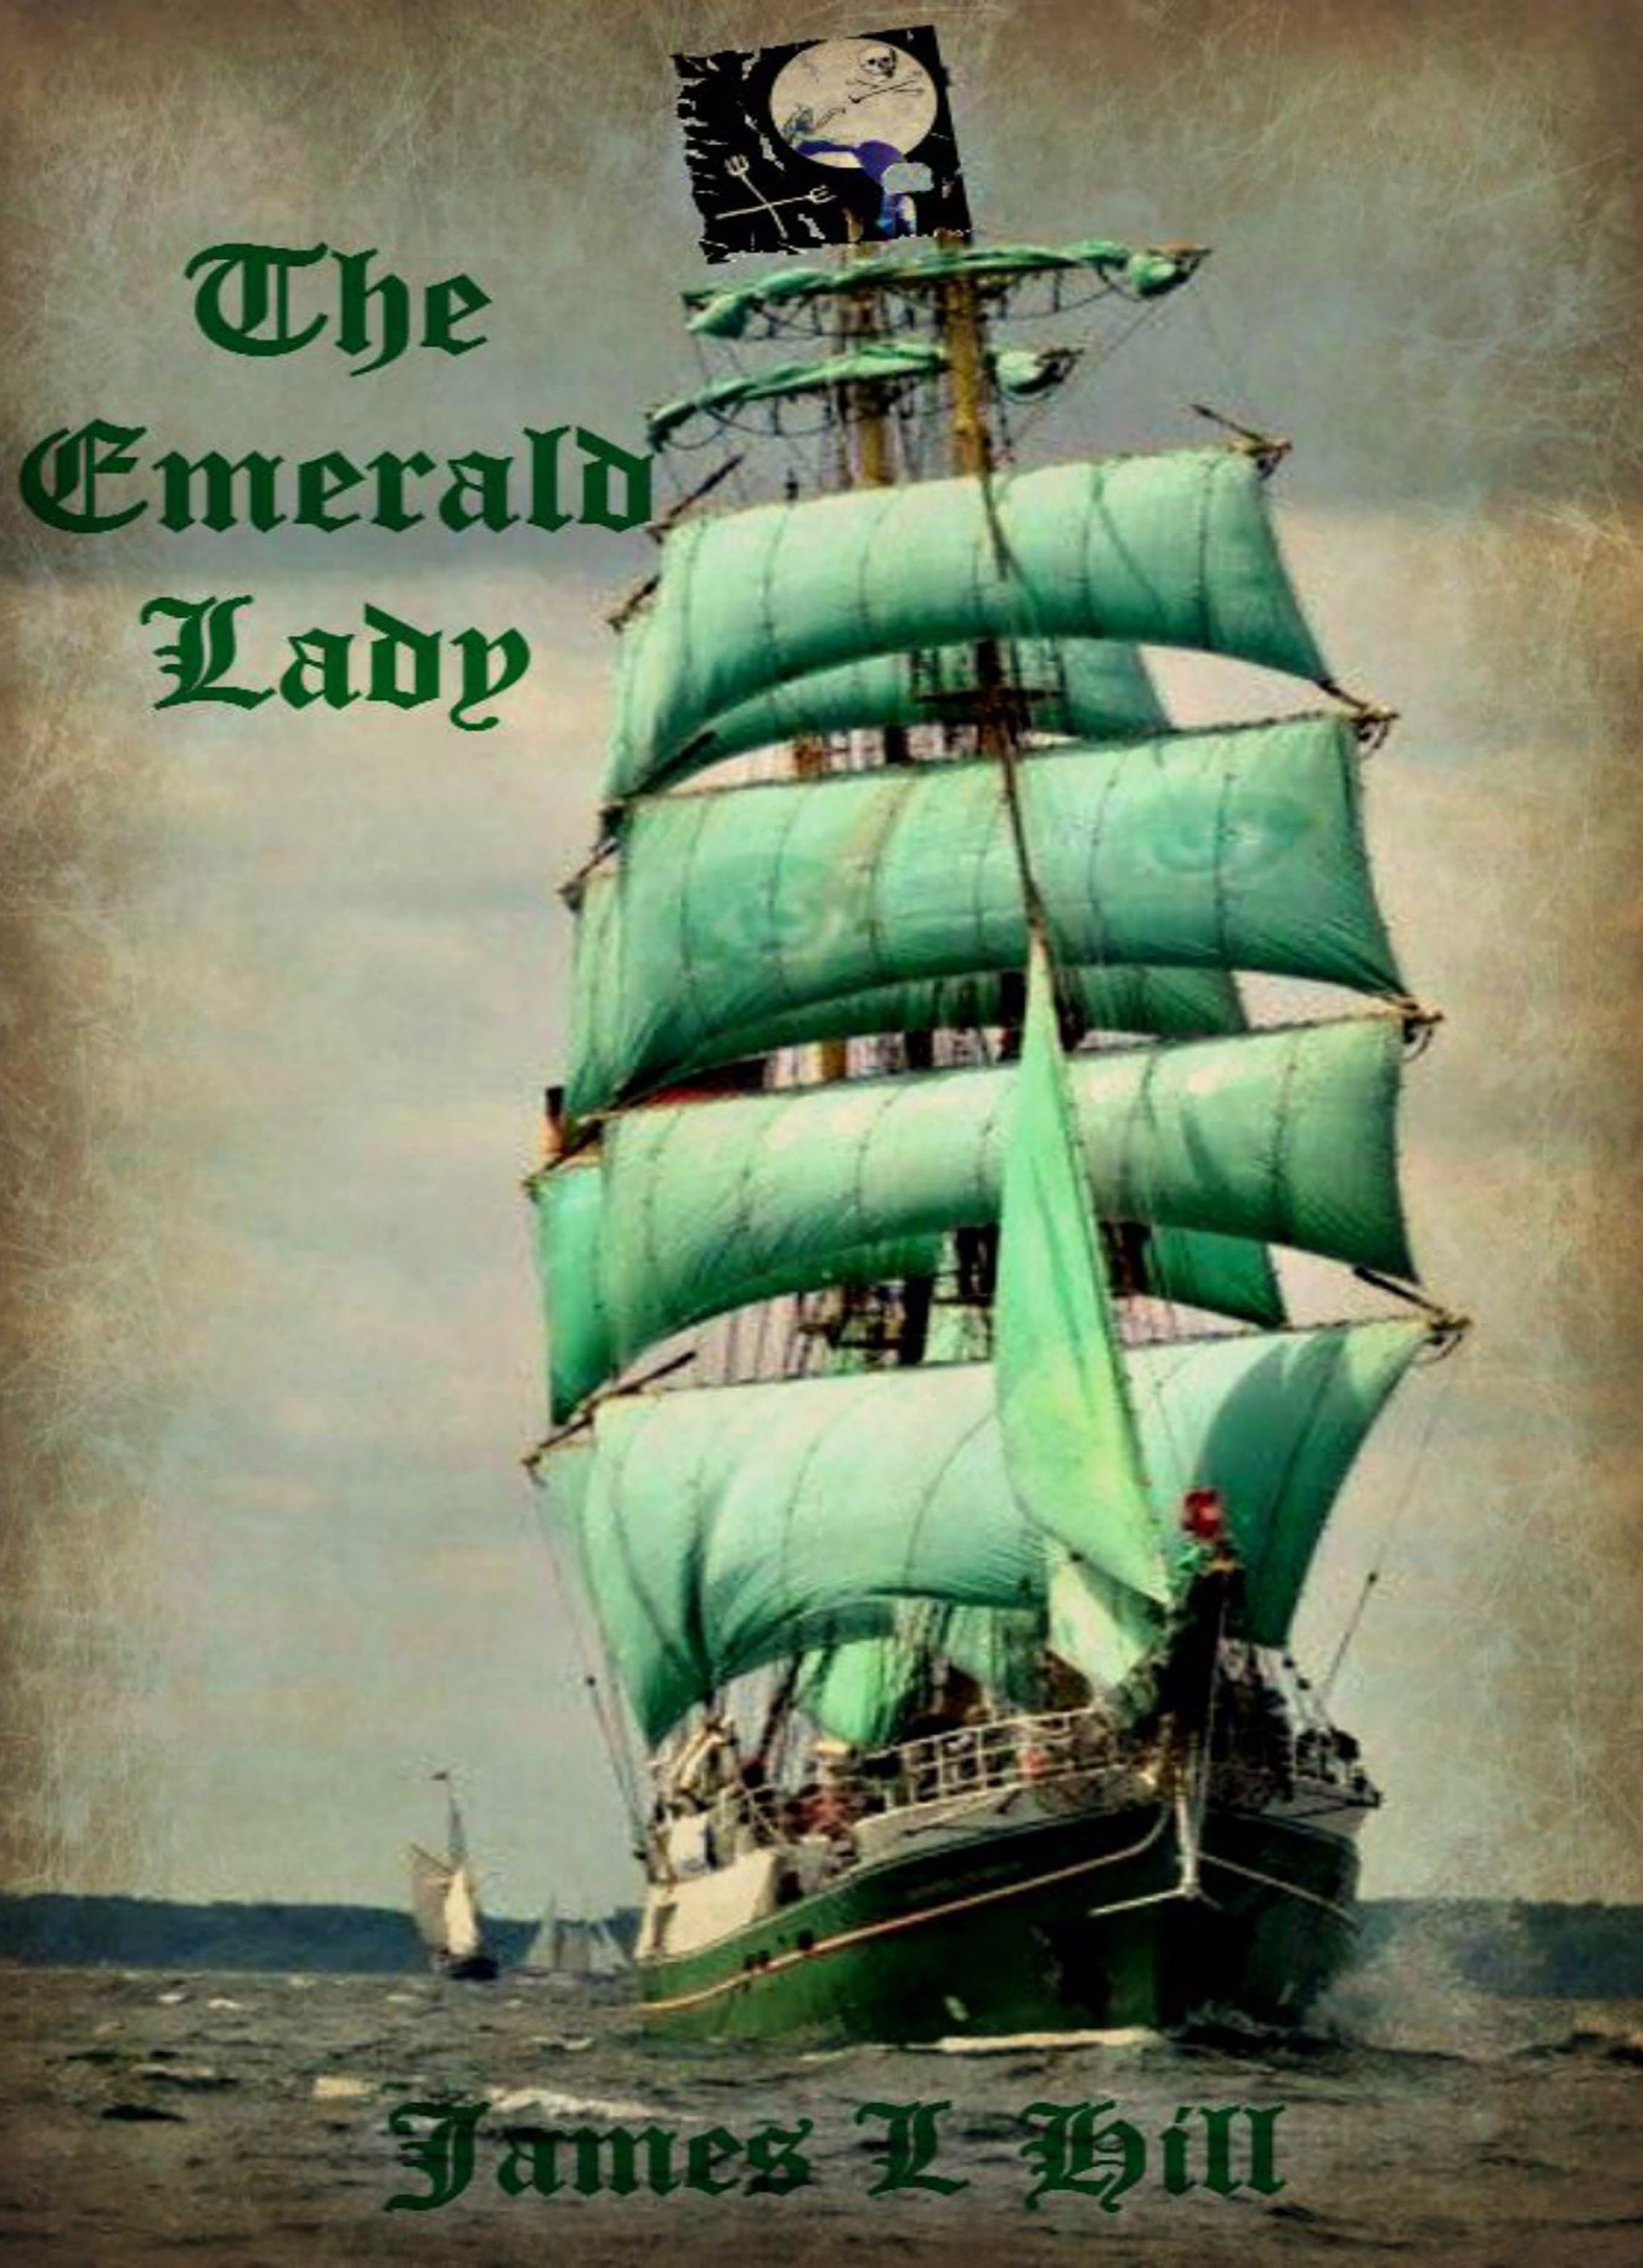 The Emerald Lady